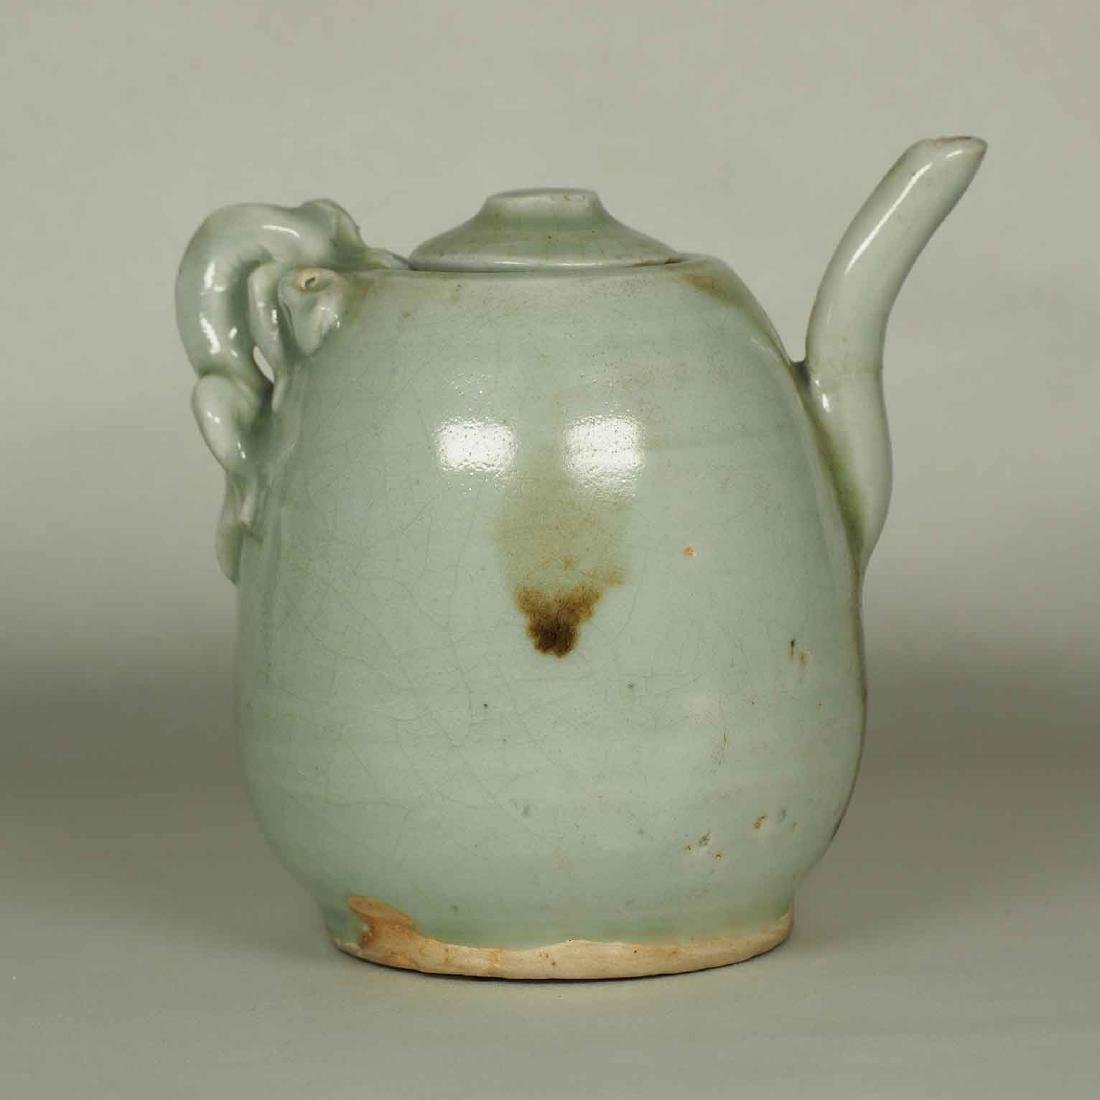 Ewer with Dragon Handle and Brown Spots, Yuan-early